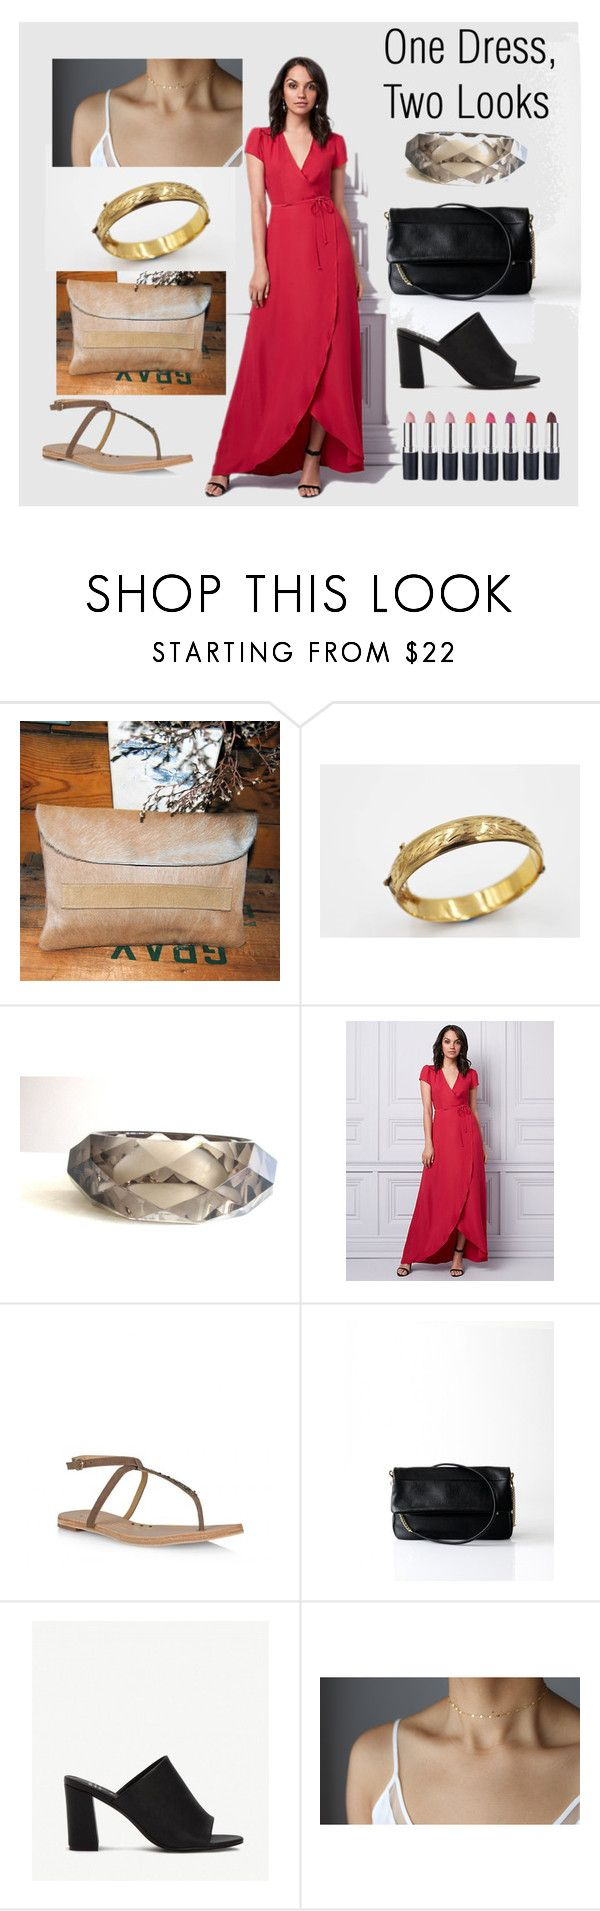 """One Dress, Two Looks"" by mapestomountains on Polyvore featuring Le Chateau"